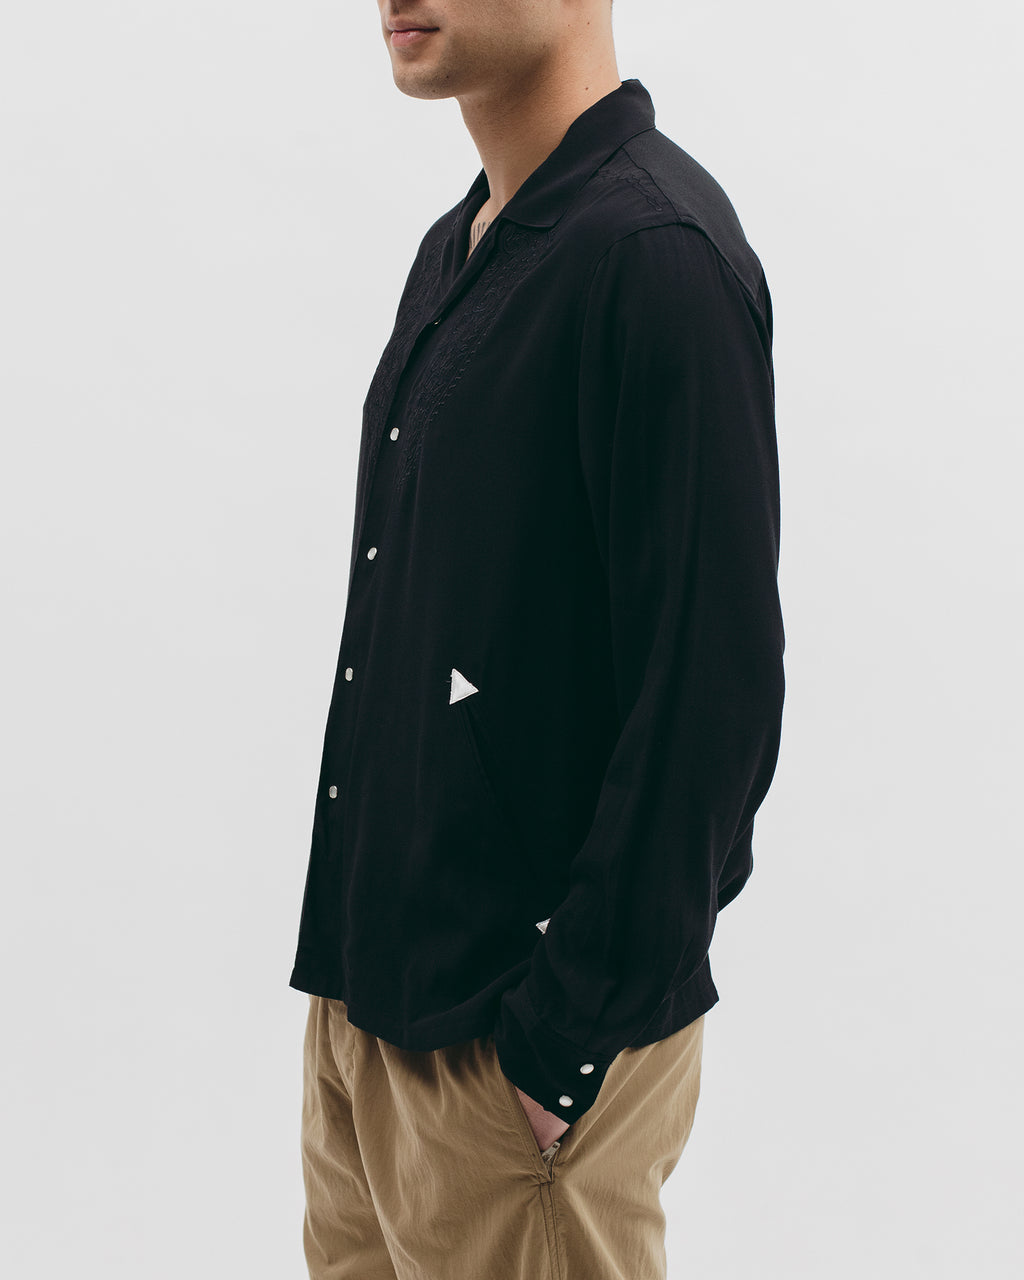 Parque L/S Shirt - Black - [product _vendor]